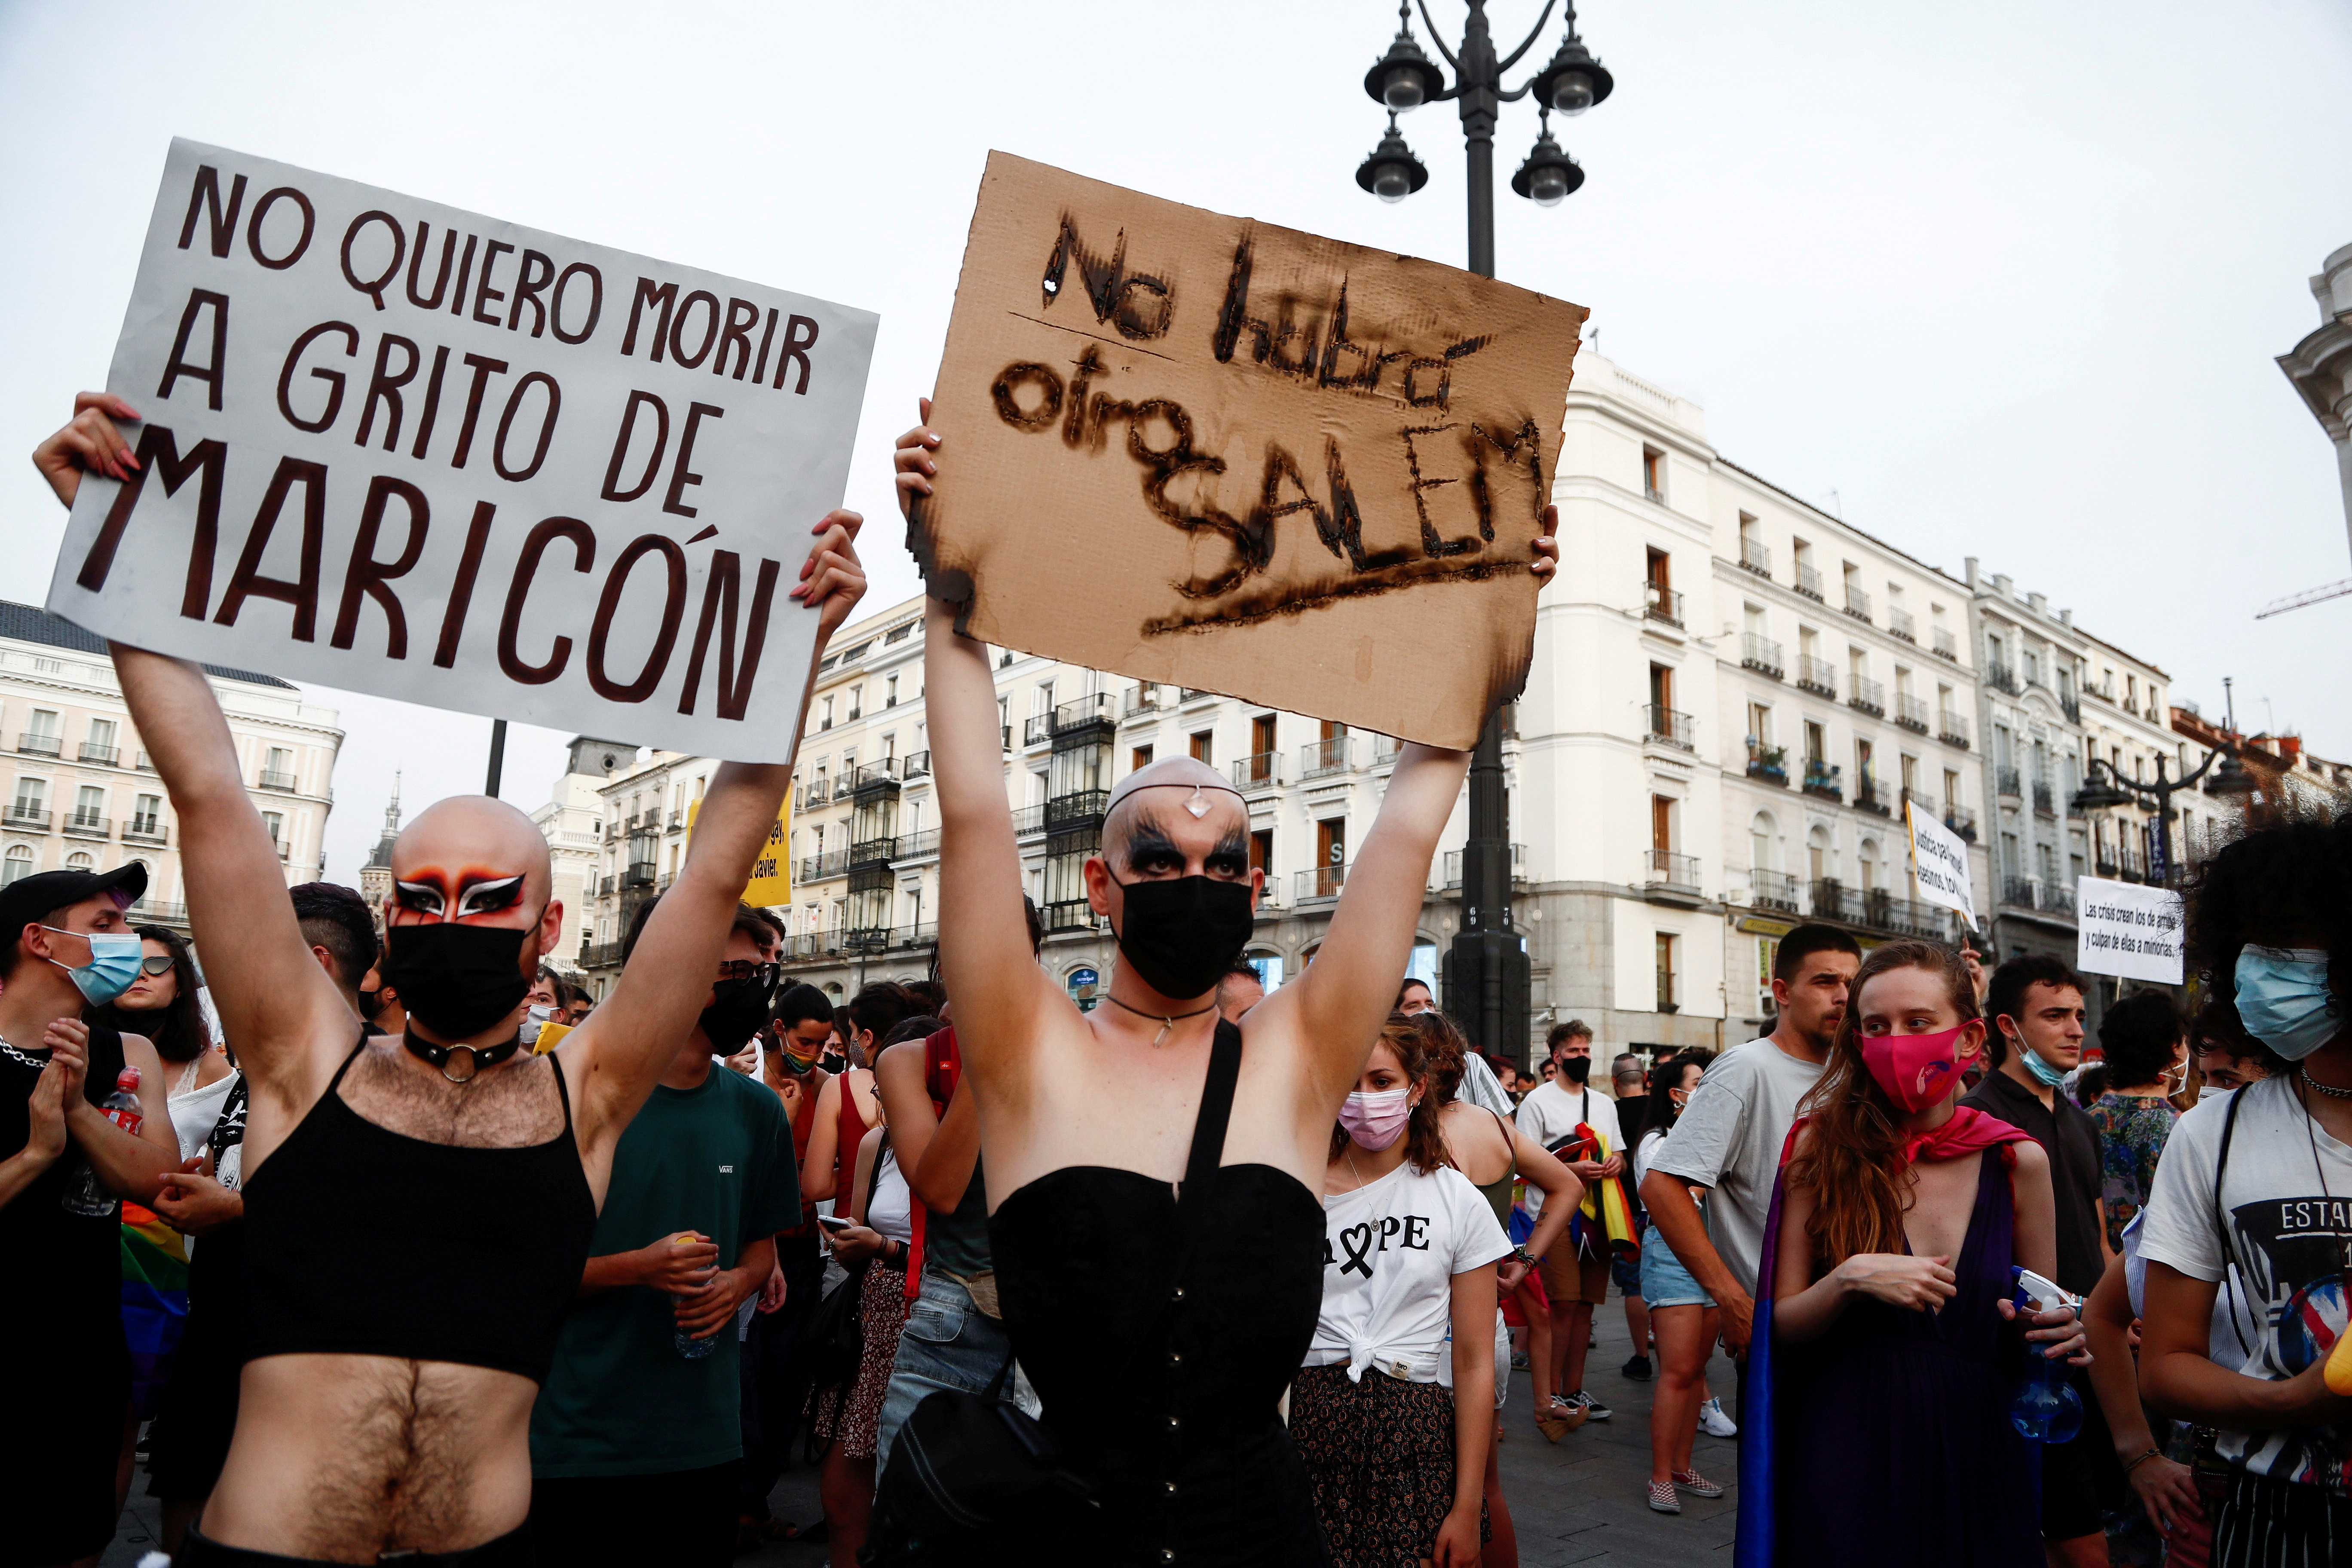 LGBT activists protest against homophobic crimes in Madrid, Spain, July 11, 2021. The signs read